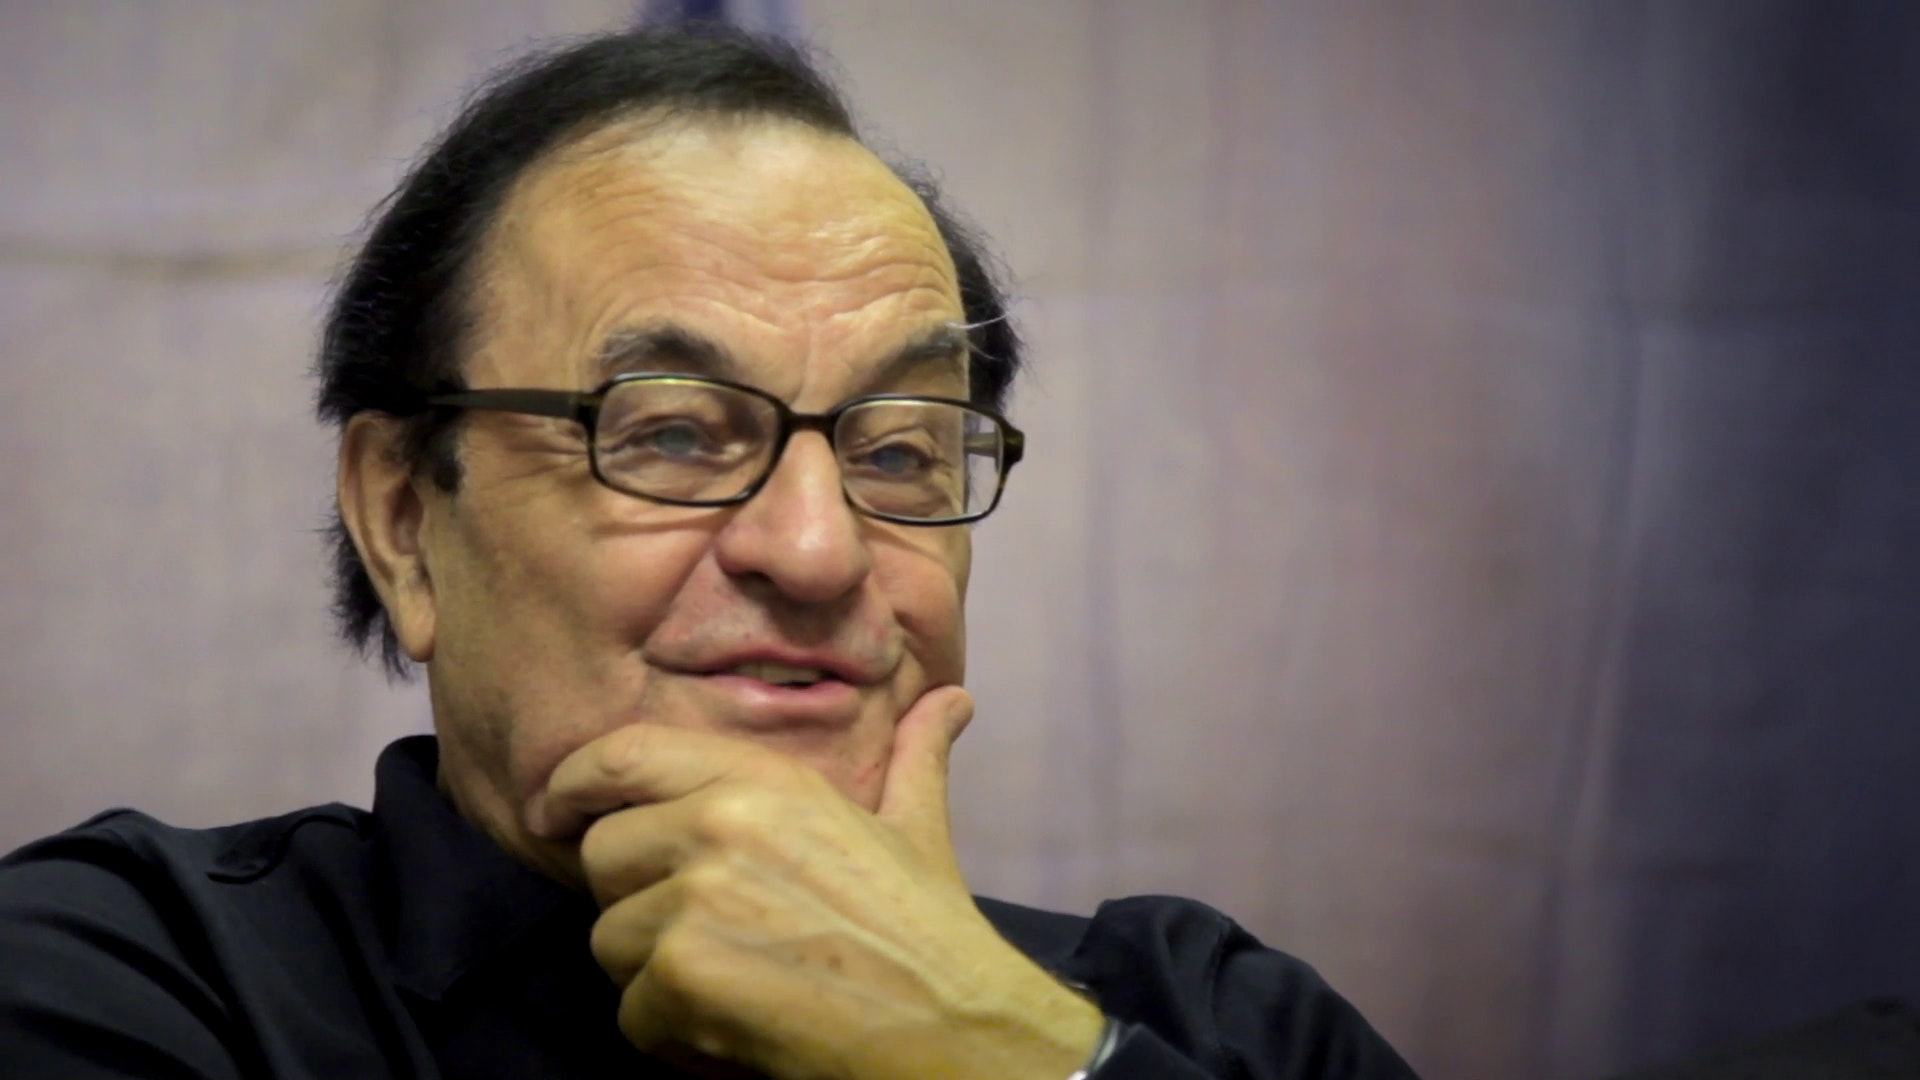 Charles Dutoit: Interview